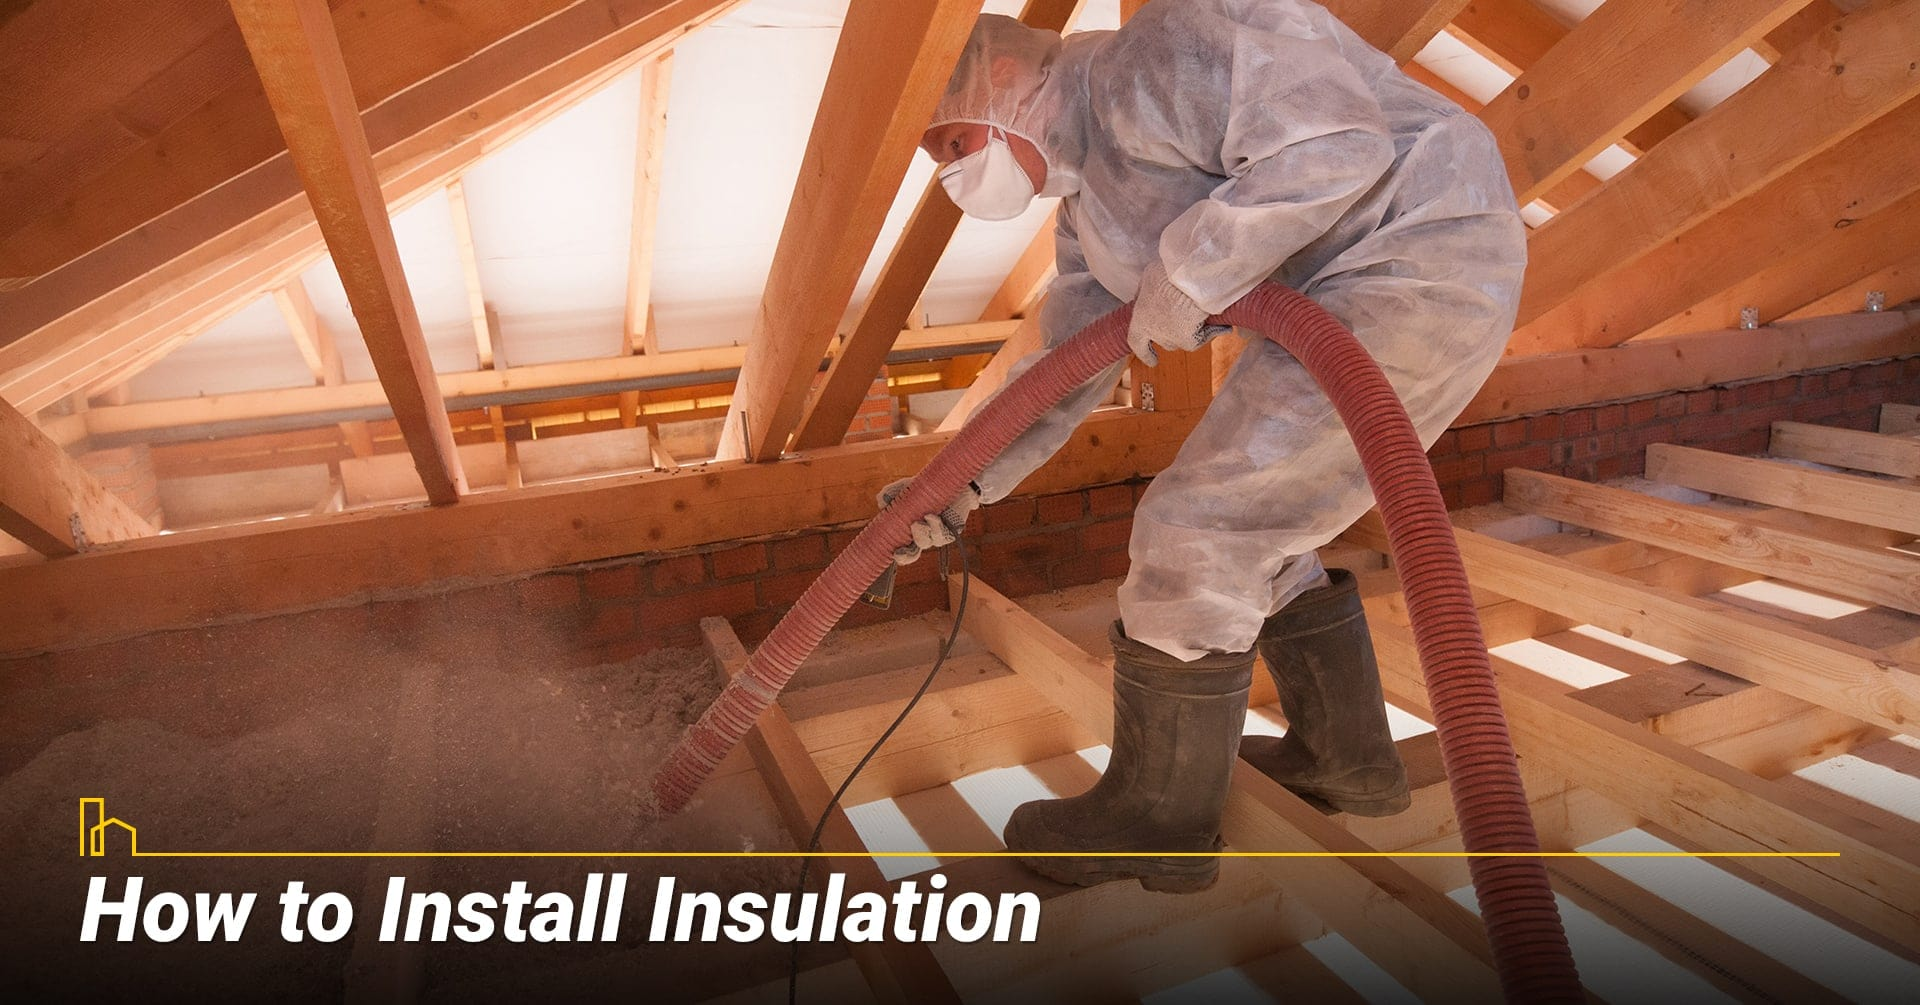 How to Install Insulation, ways to insulate your home